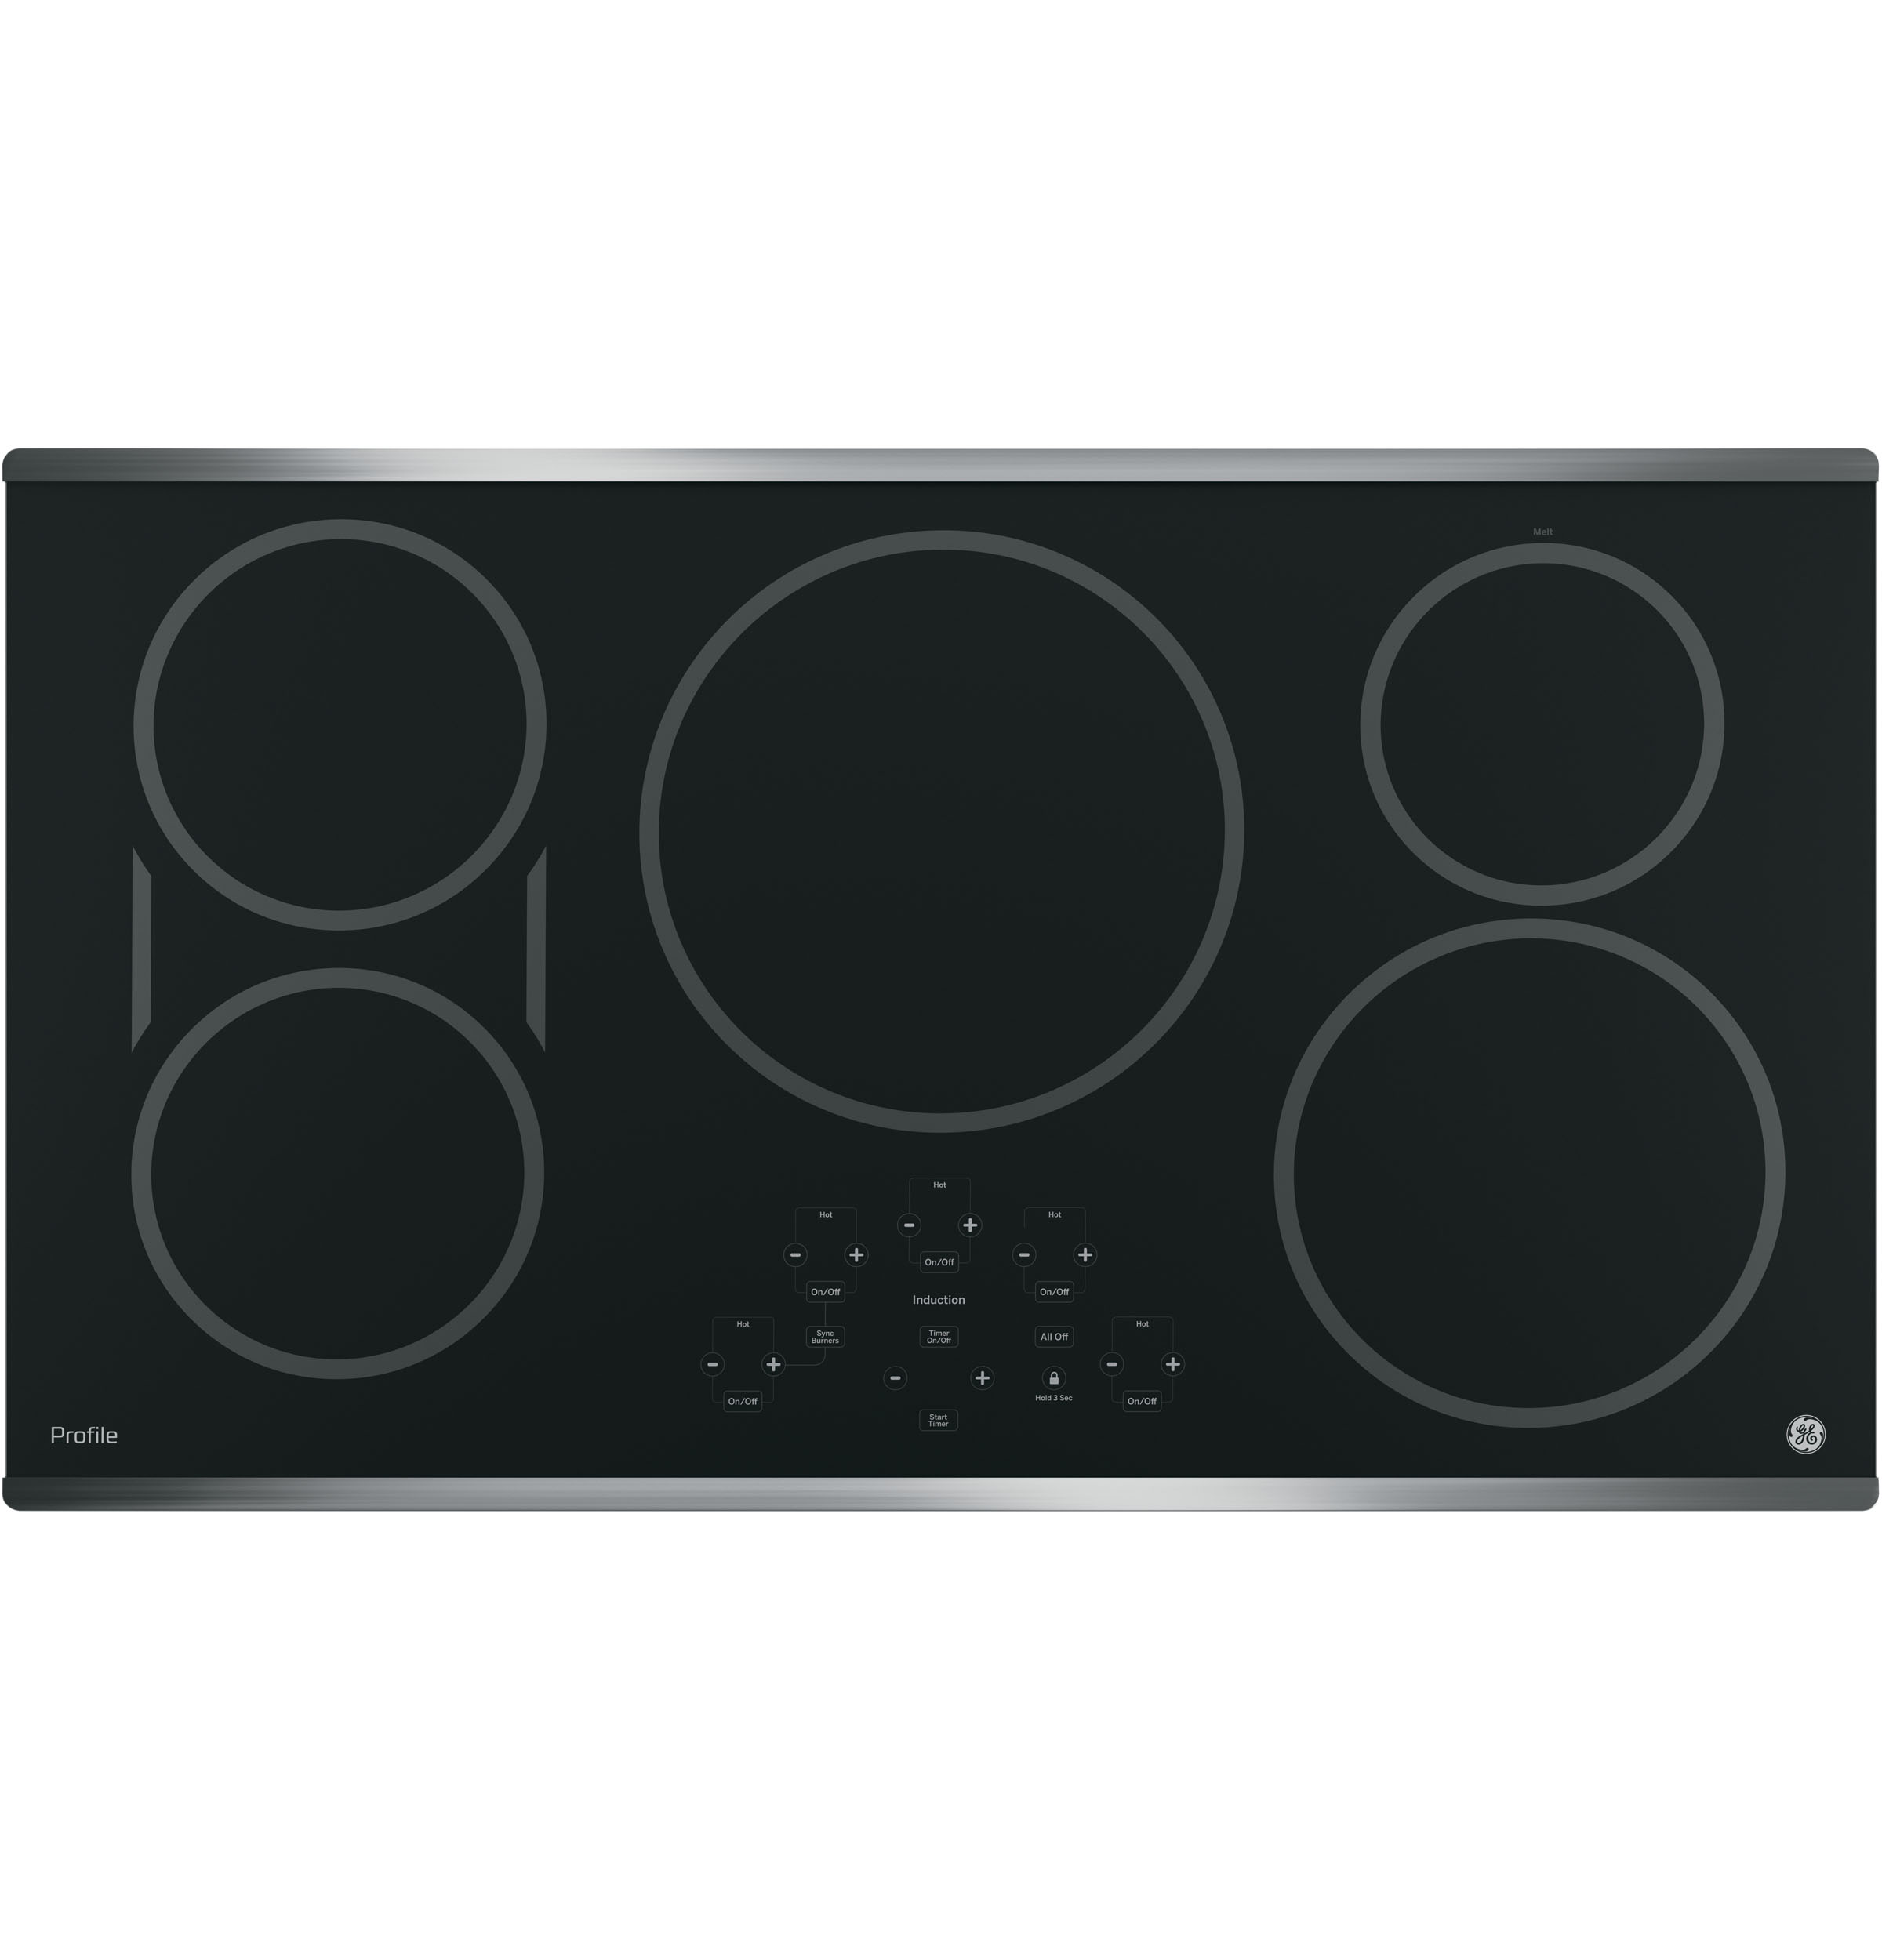 "GE Profile GE Profile™ 36"" Built-In Touch Control Induction Cooktop"